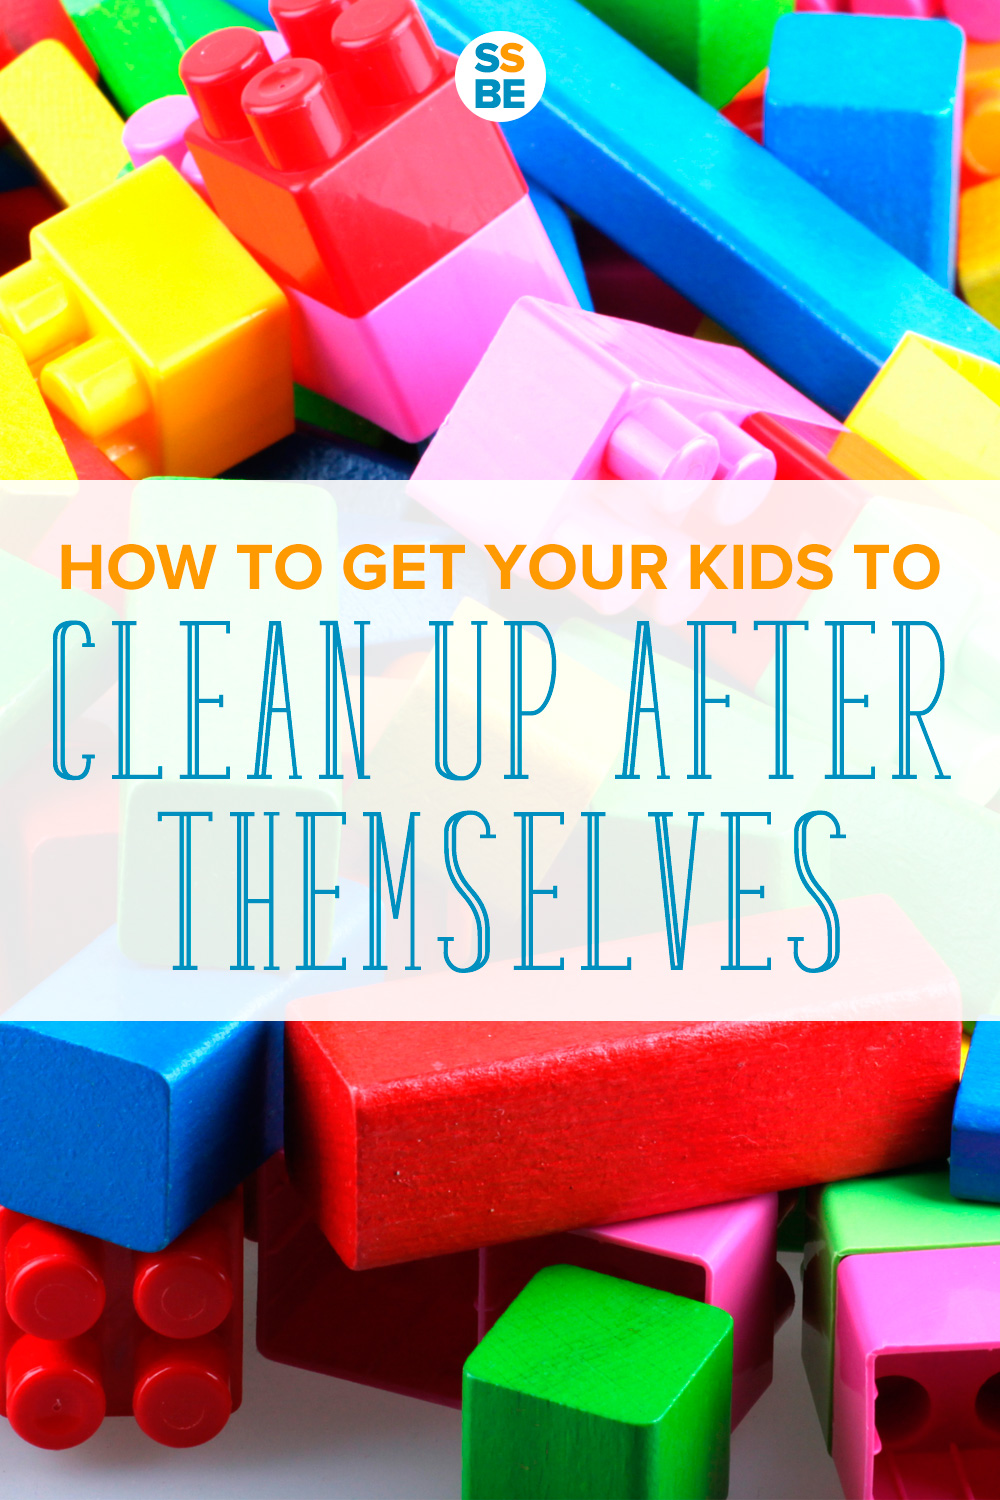 Tired of picking up your kids' toys and items at the end of the day? Here's how to get your kids to clean up after themselves without nagging or yelling.